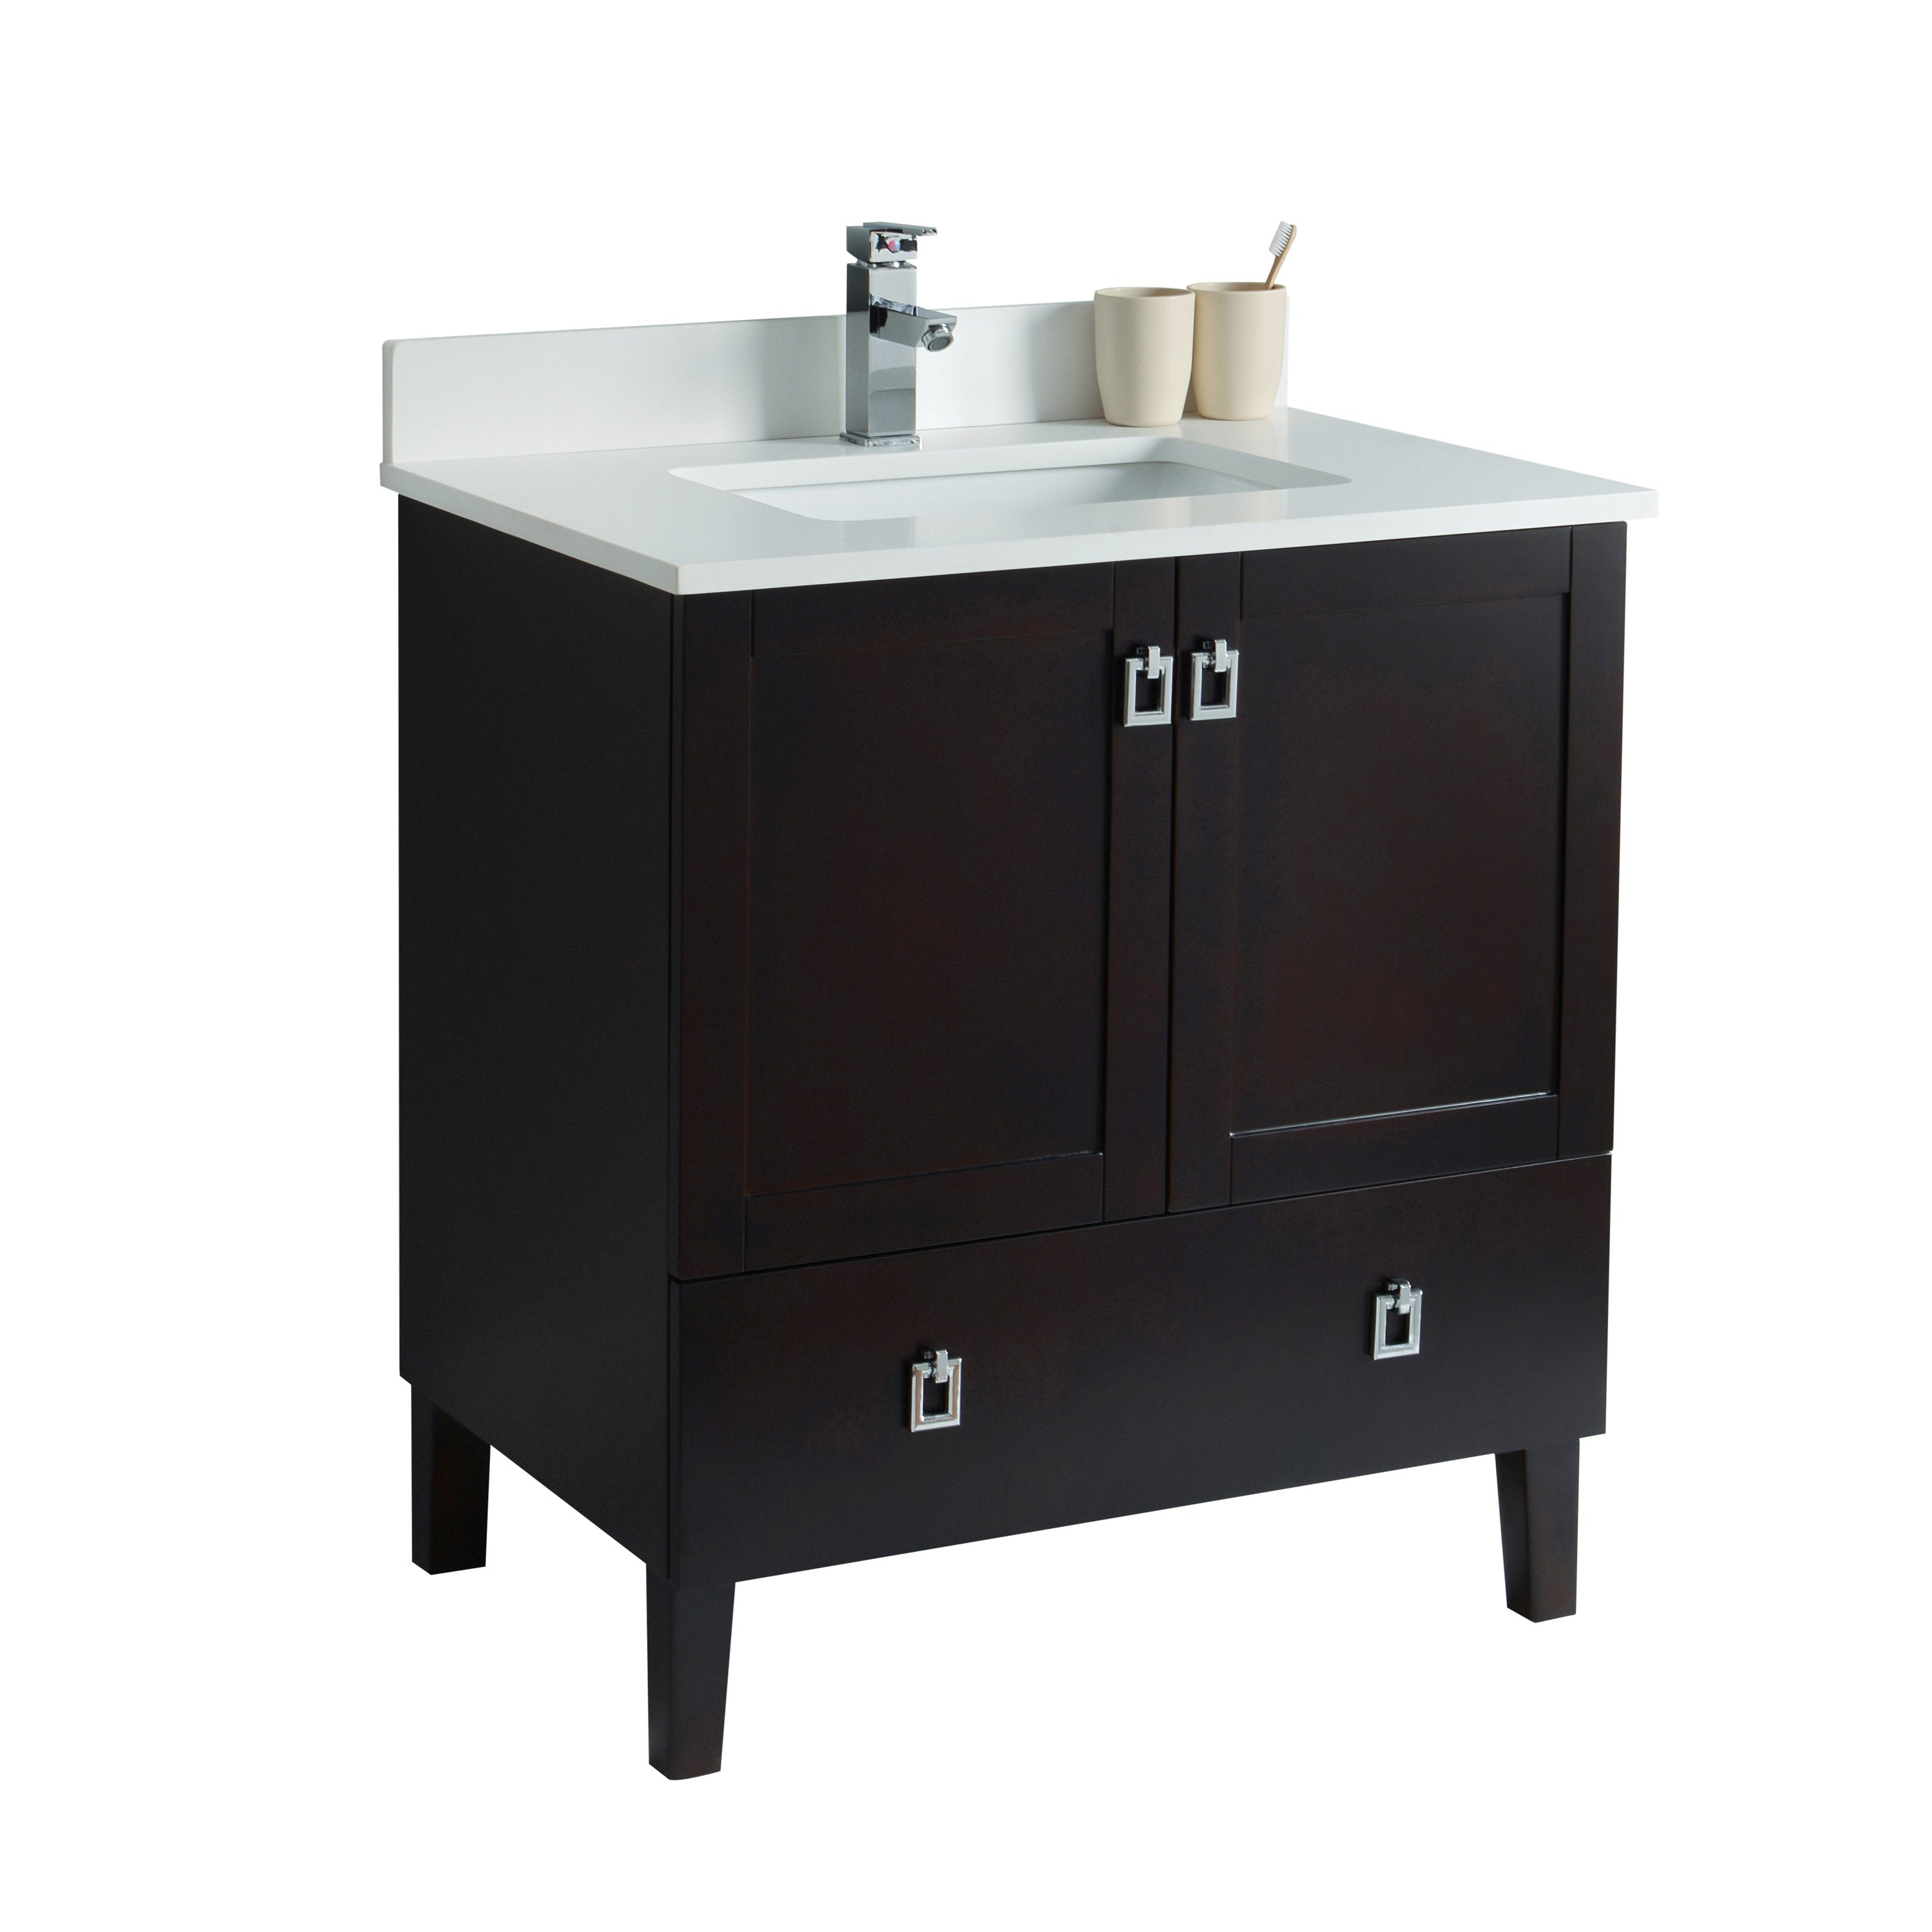 30 inch bathroom cabinet with doors and drawer